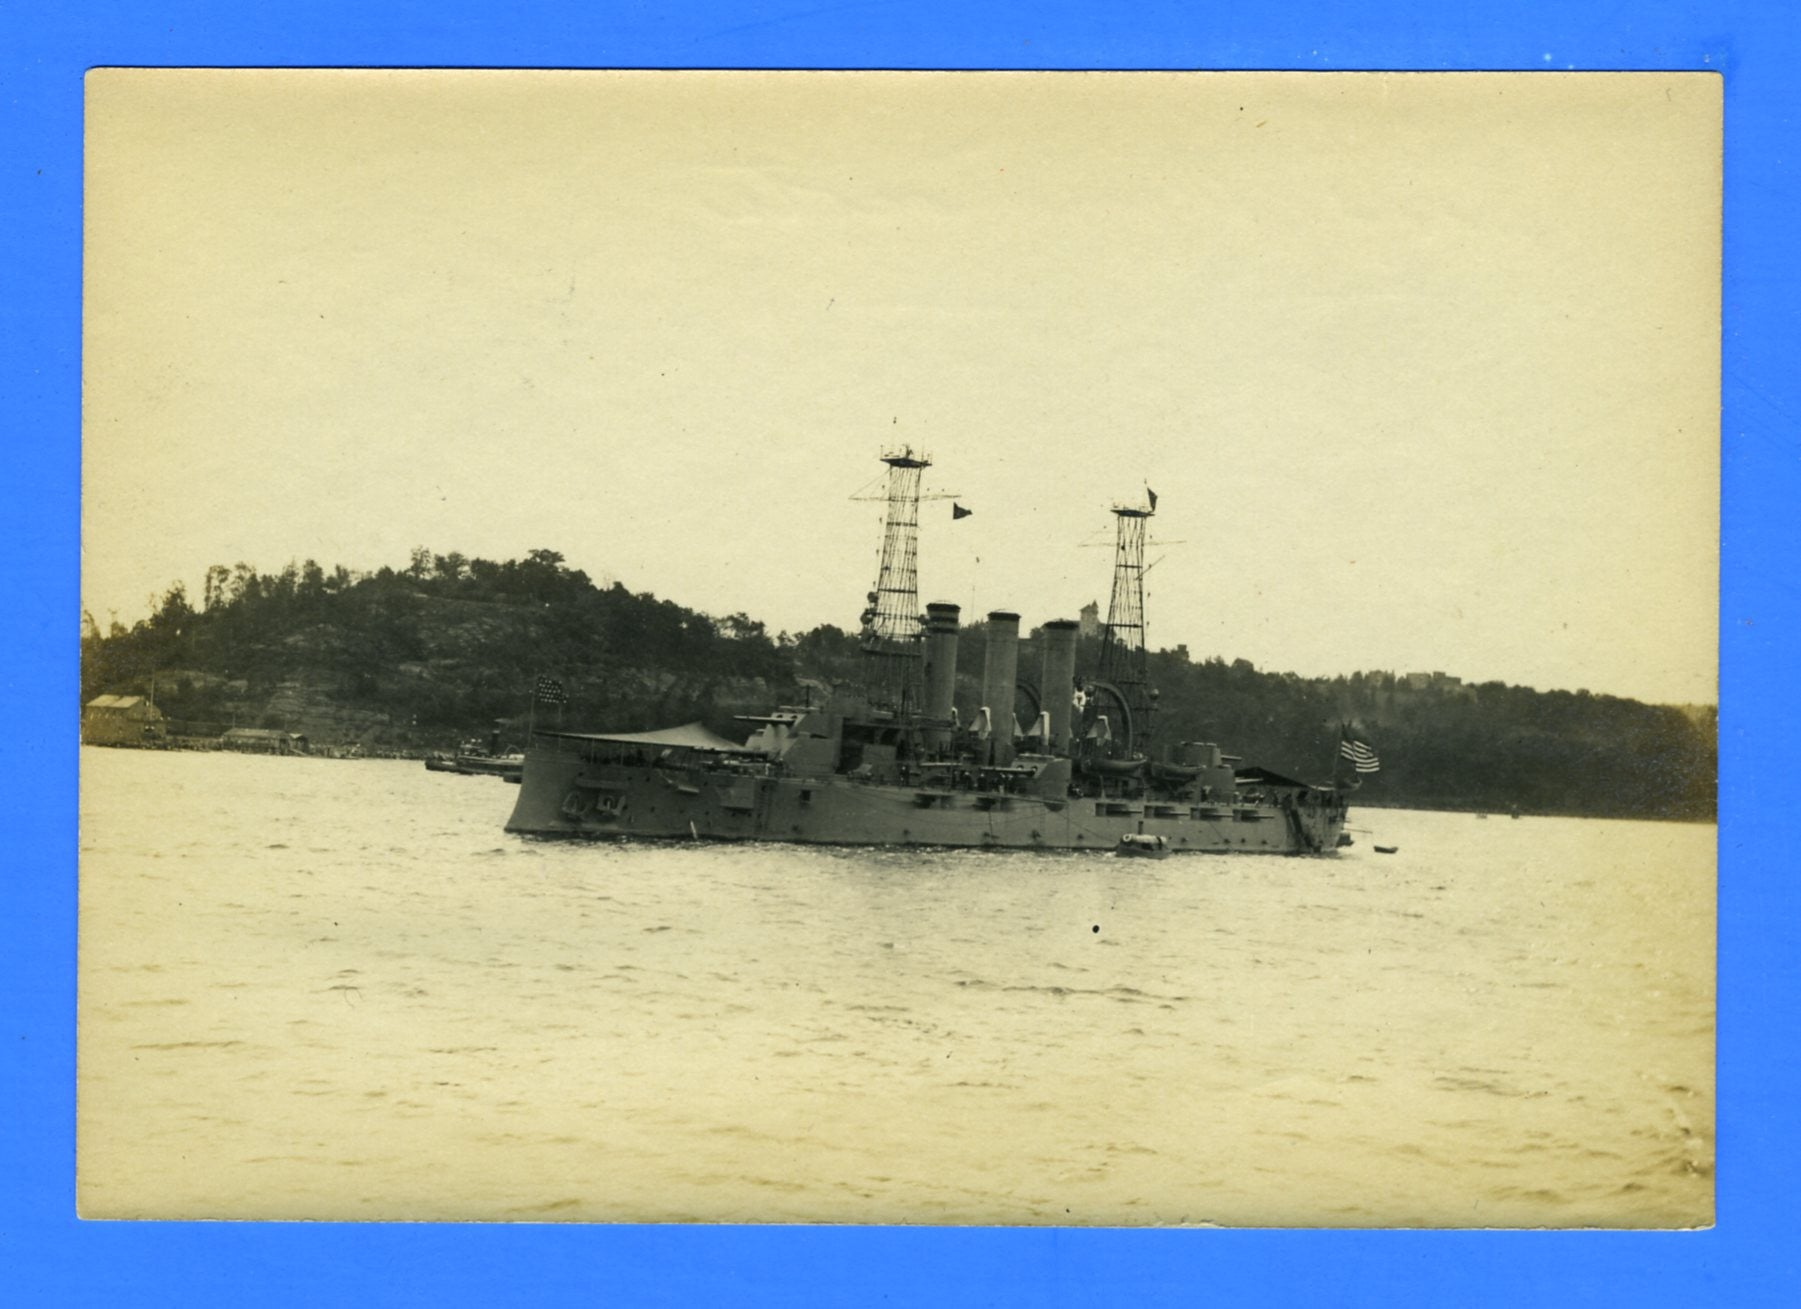 "USS Minnesota BB-22 at Hudson-Fulton Celebration October 1909 - 3 7/8 x 5 1/2"" Photograph"